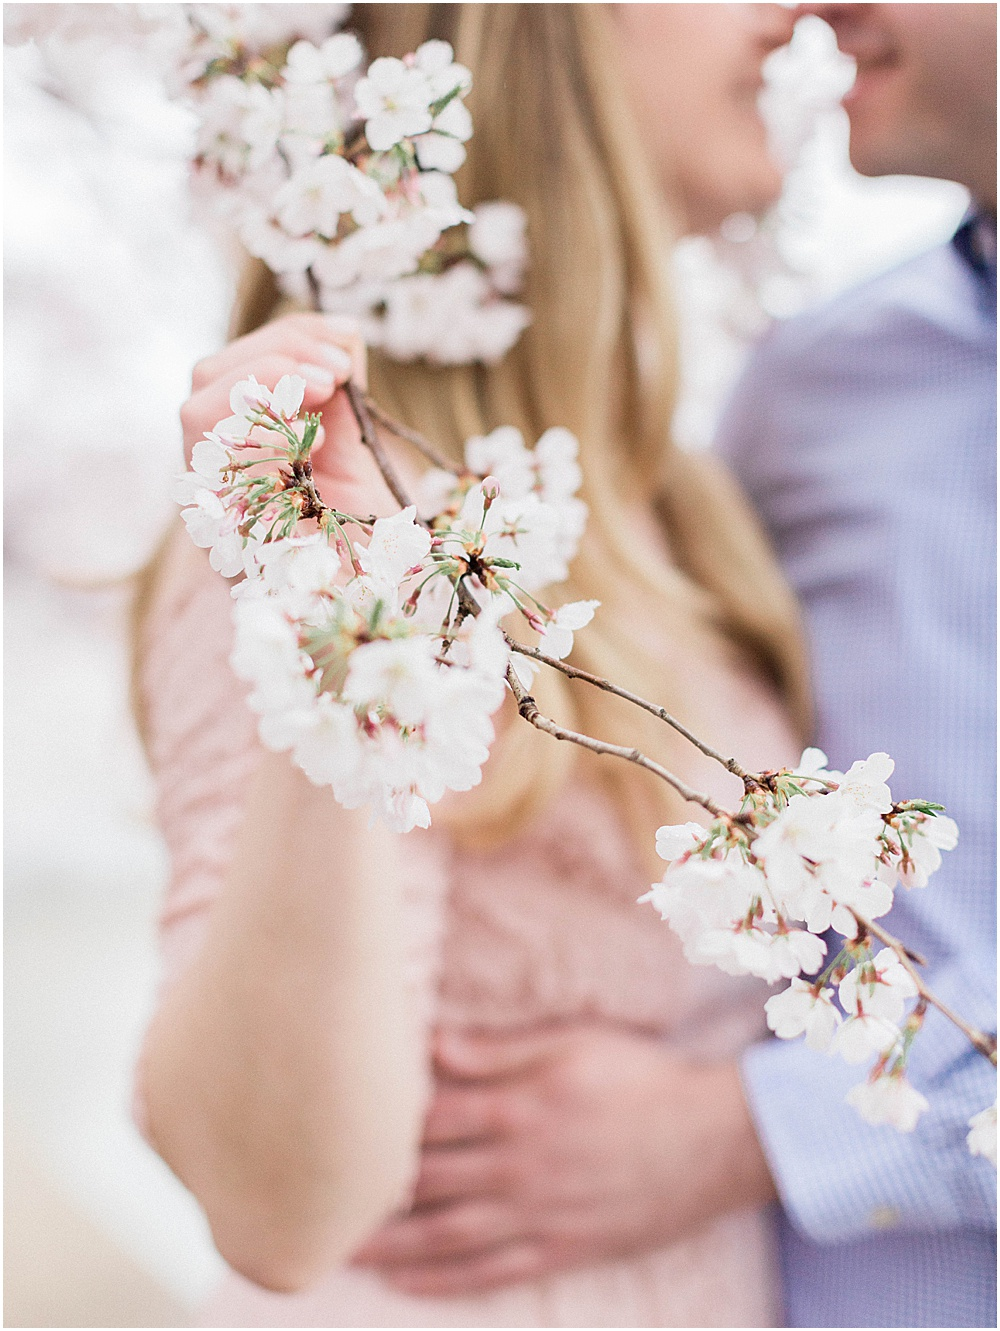 Holding a Cherry Blossom during DC Cherry Blossom Engagement